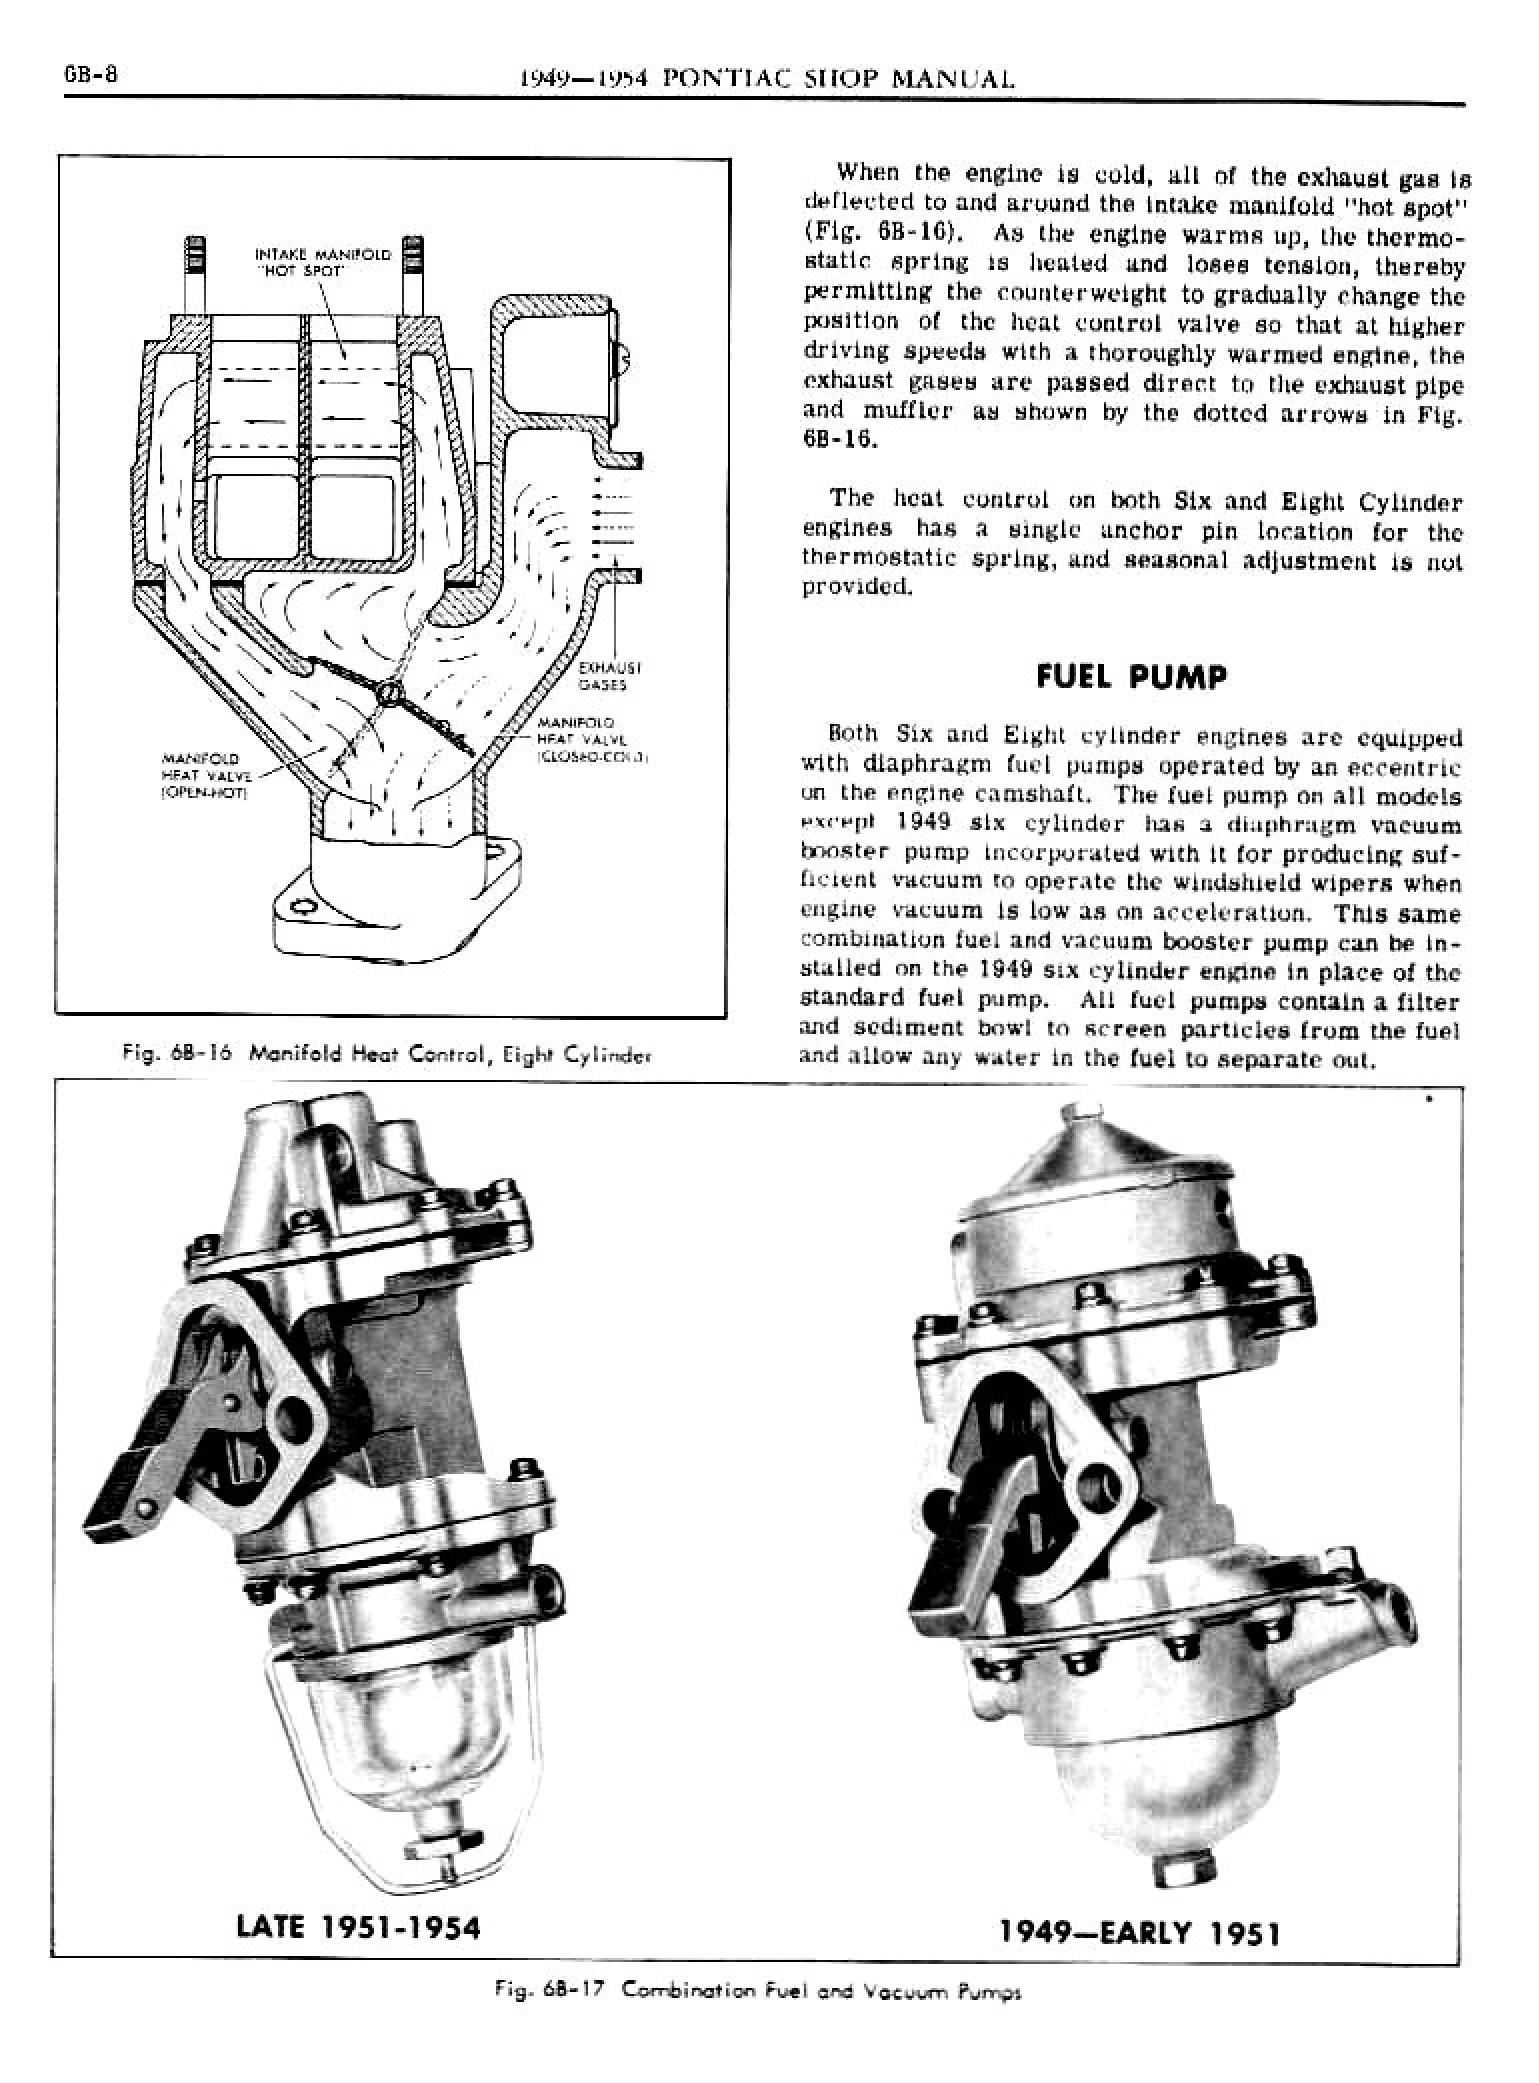 1949 Pontiac Shop Manual- Engine Fuel Page 8 of 42